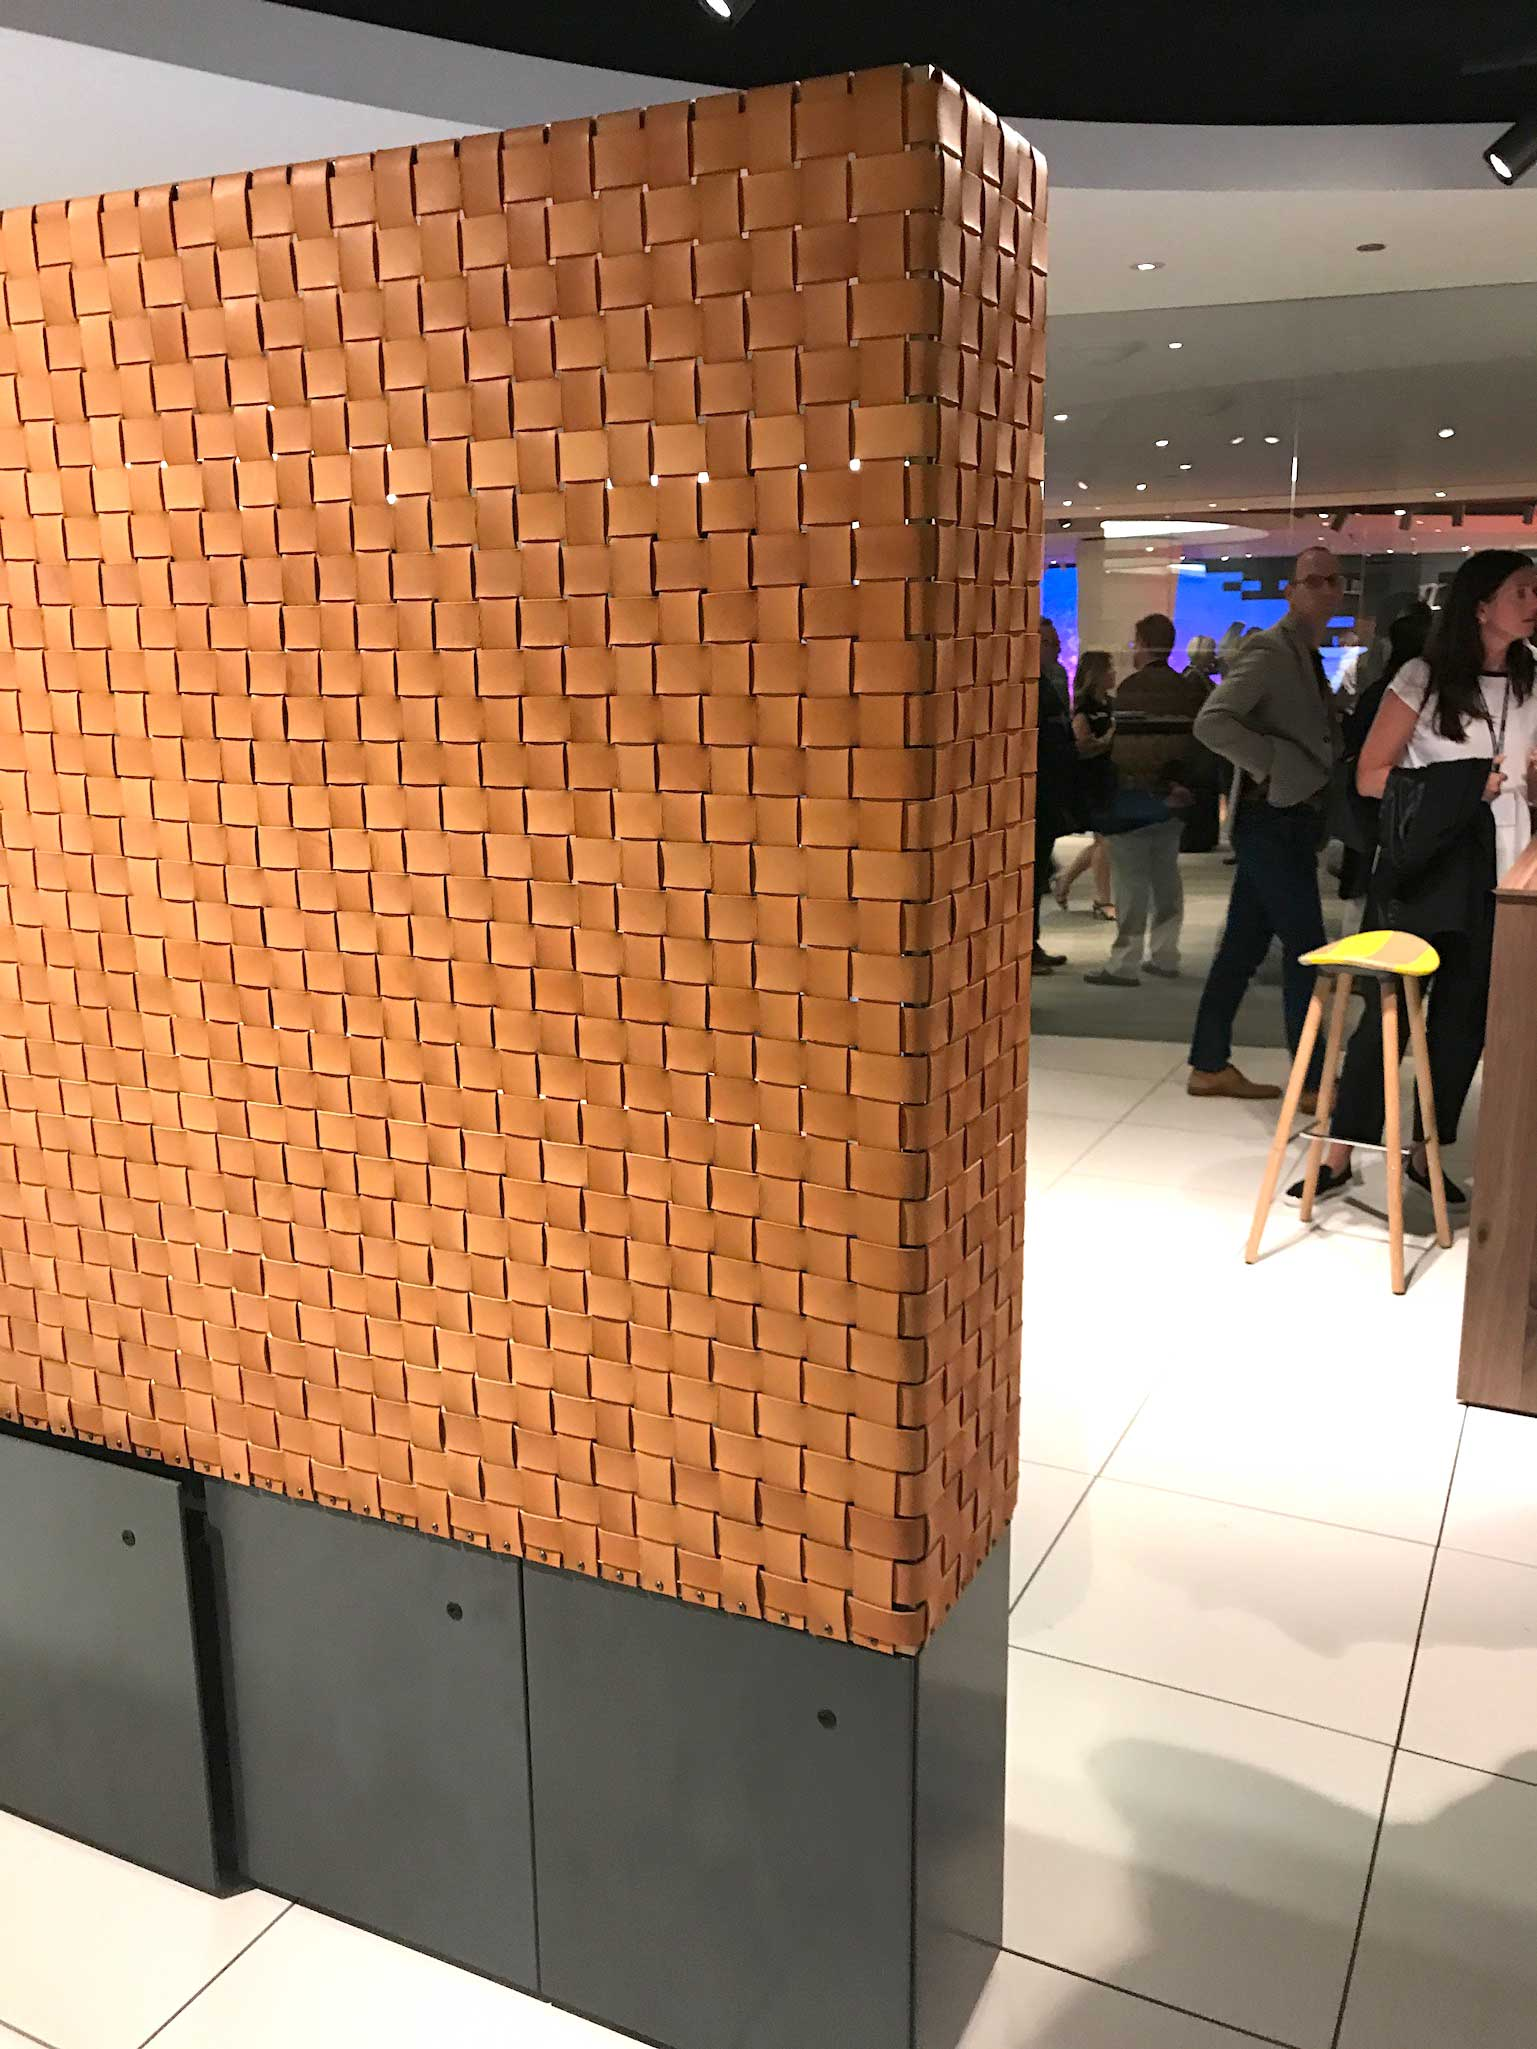 5 Trends We Saw at NeoCon 2018 from Unisource Solutions - Natural textures